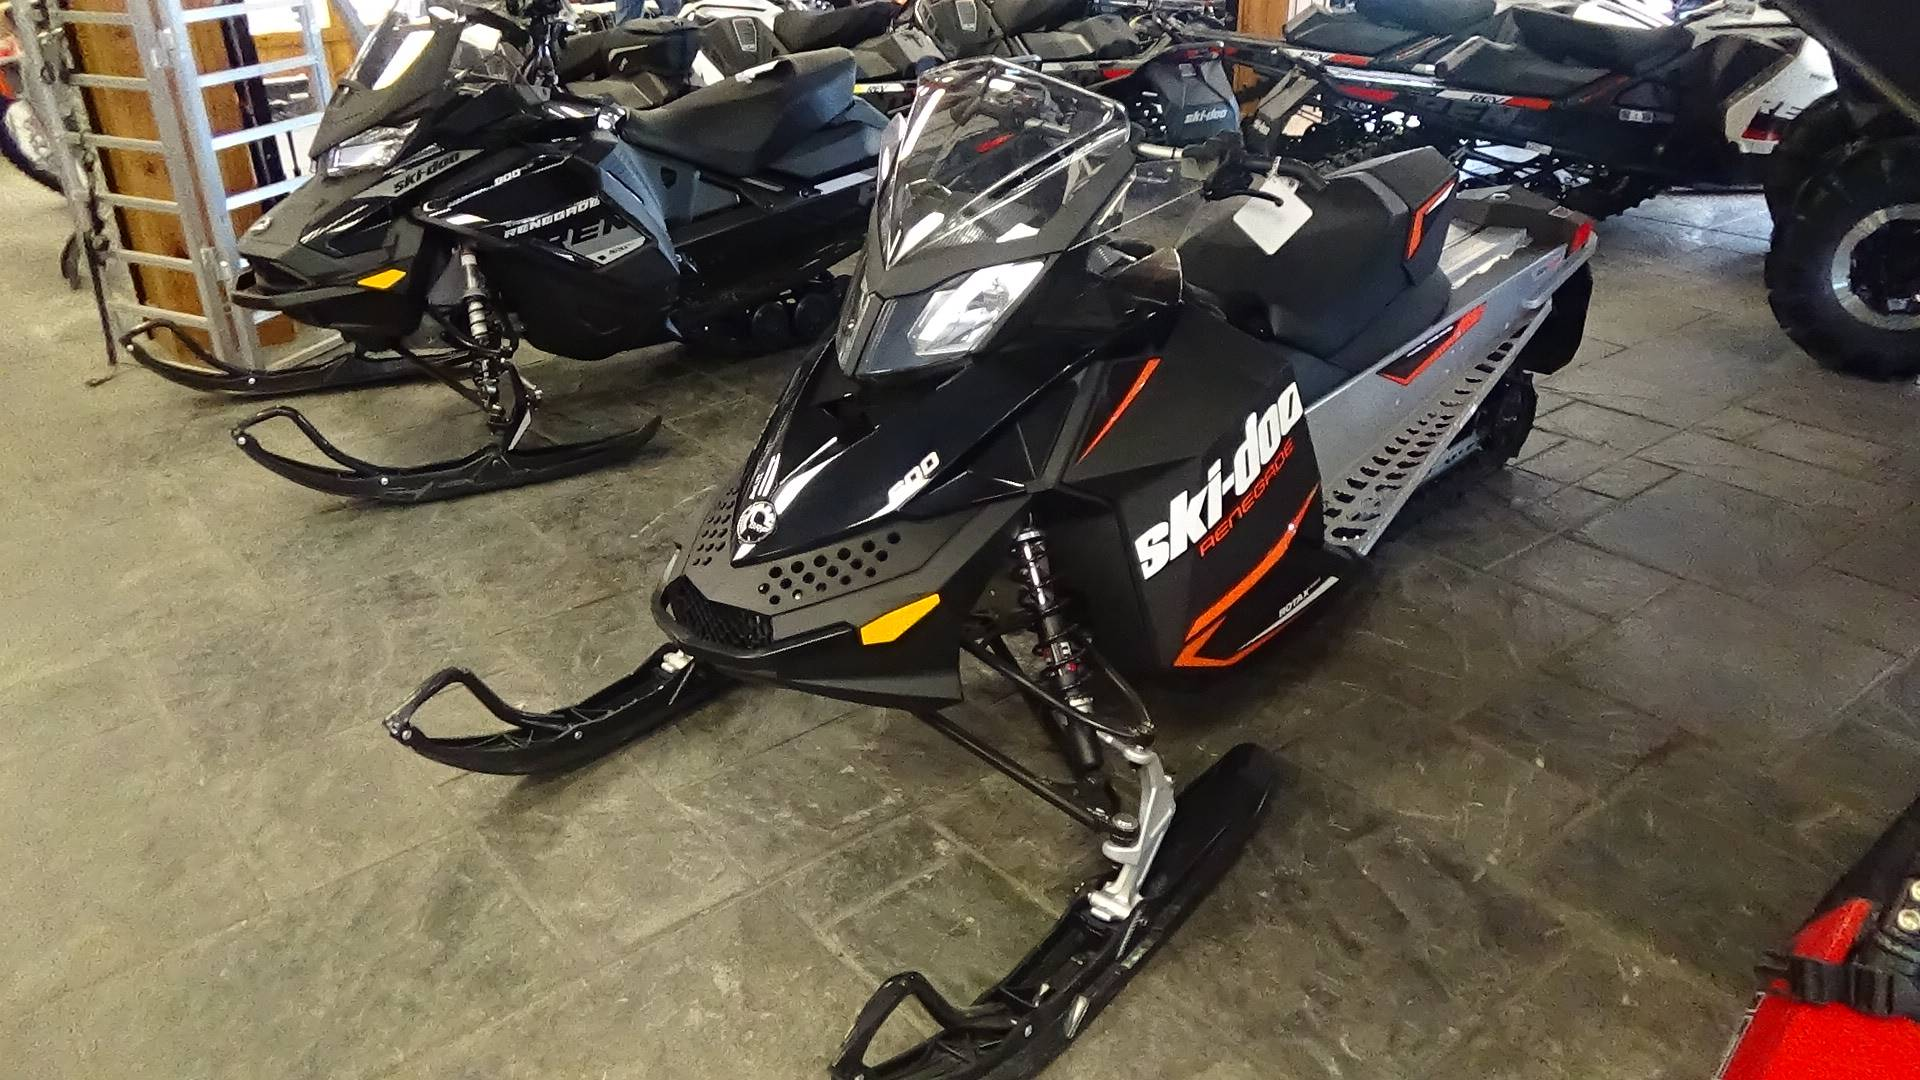 2019 Ski-Doo Renegade Sport 600 Carb in Bennington, Vermont - Photo 3